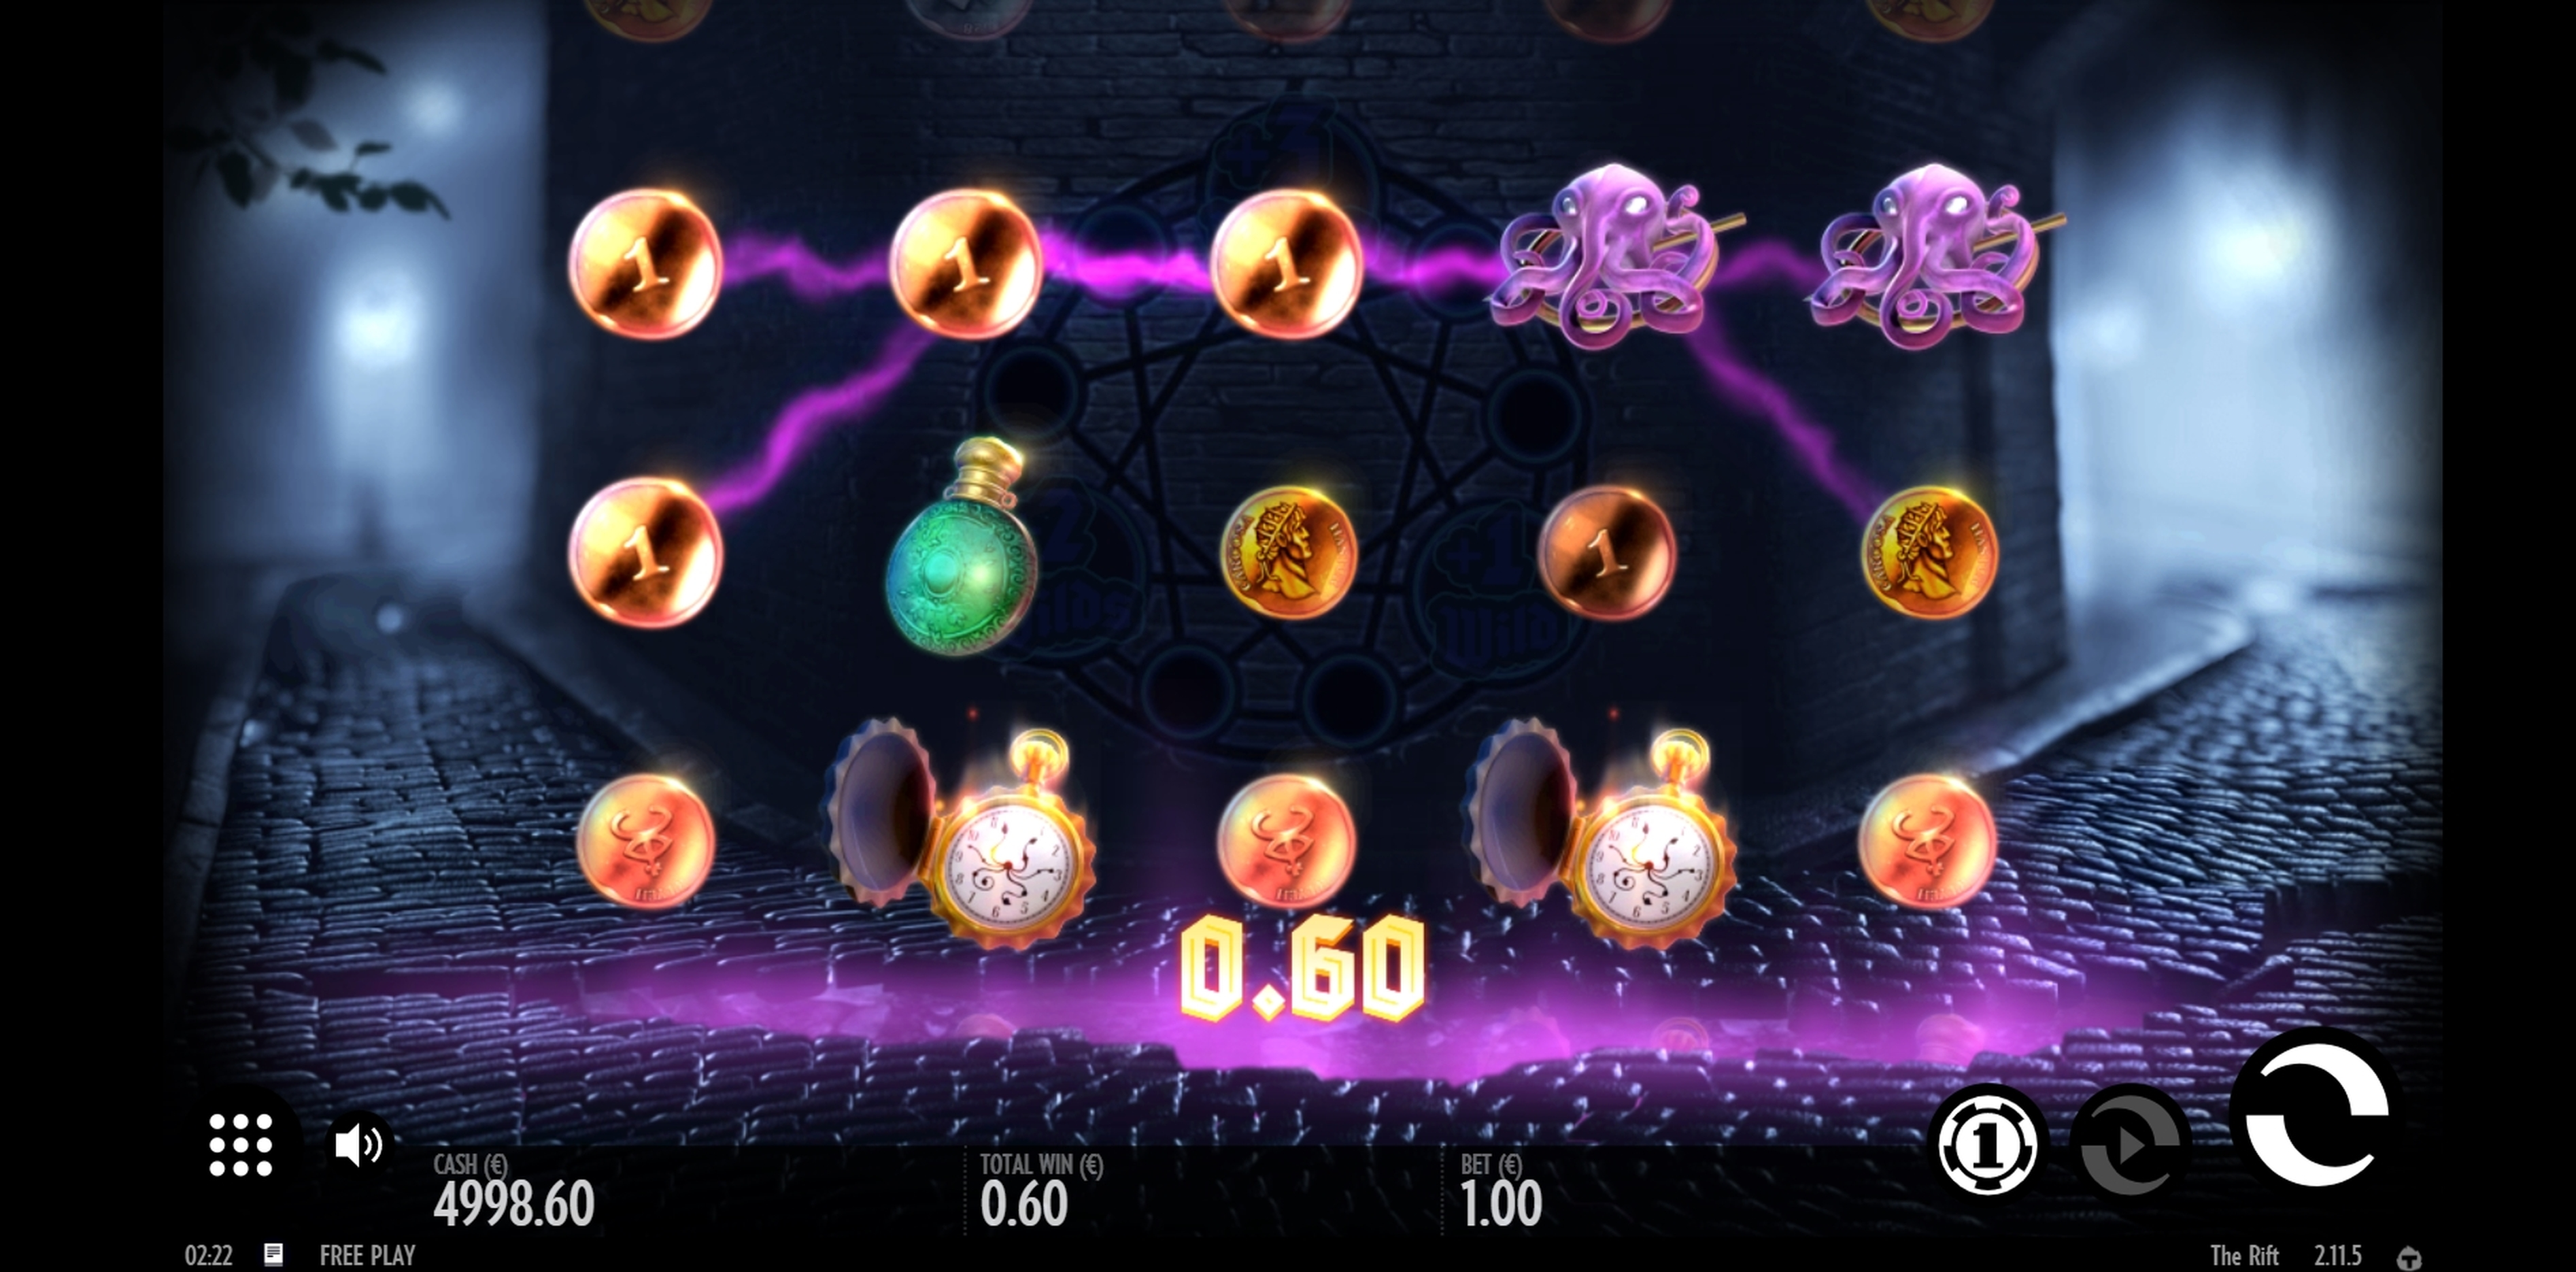 Win Money in The Rift Free Slot Game by Thunderkick